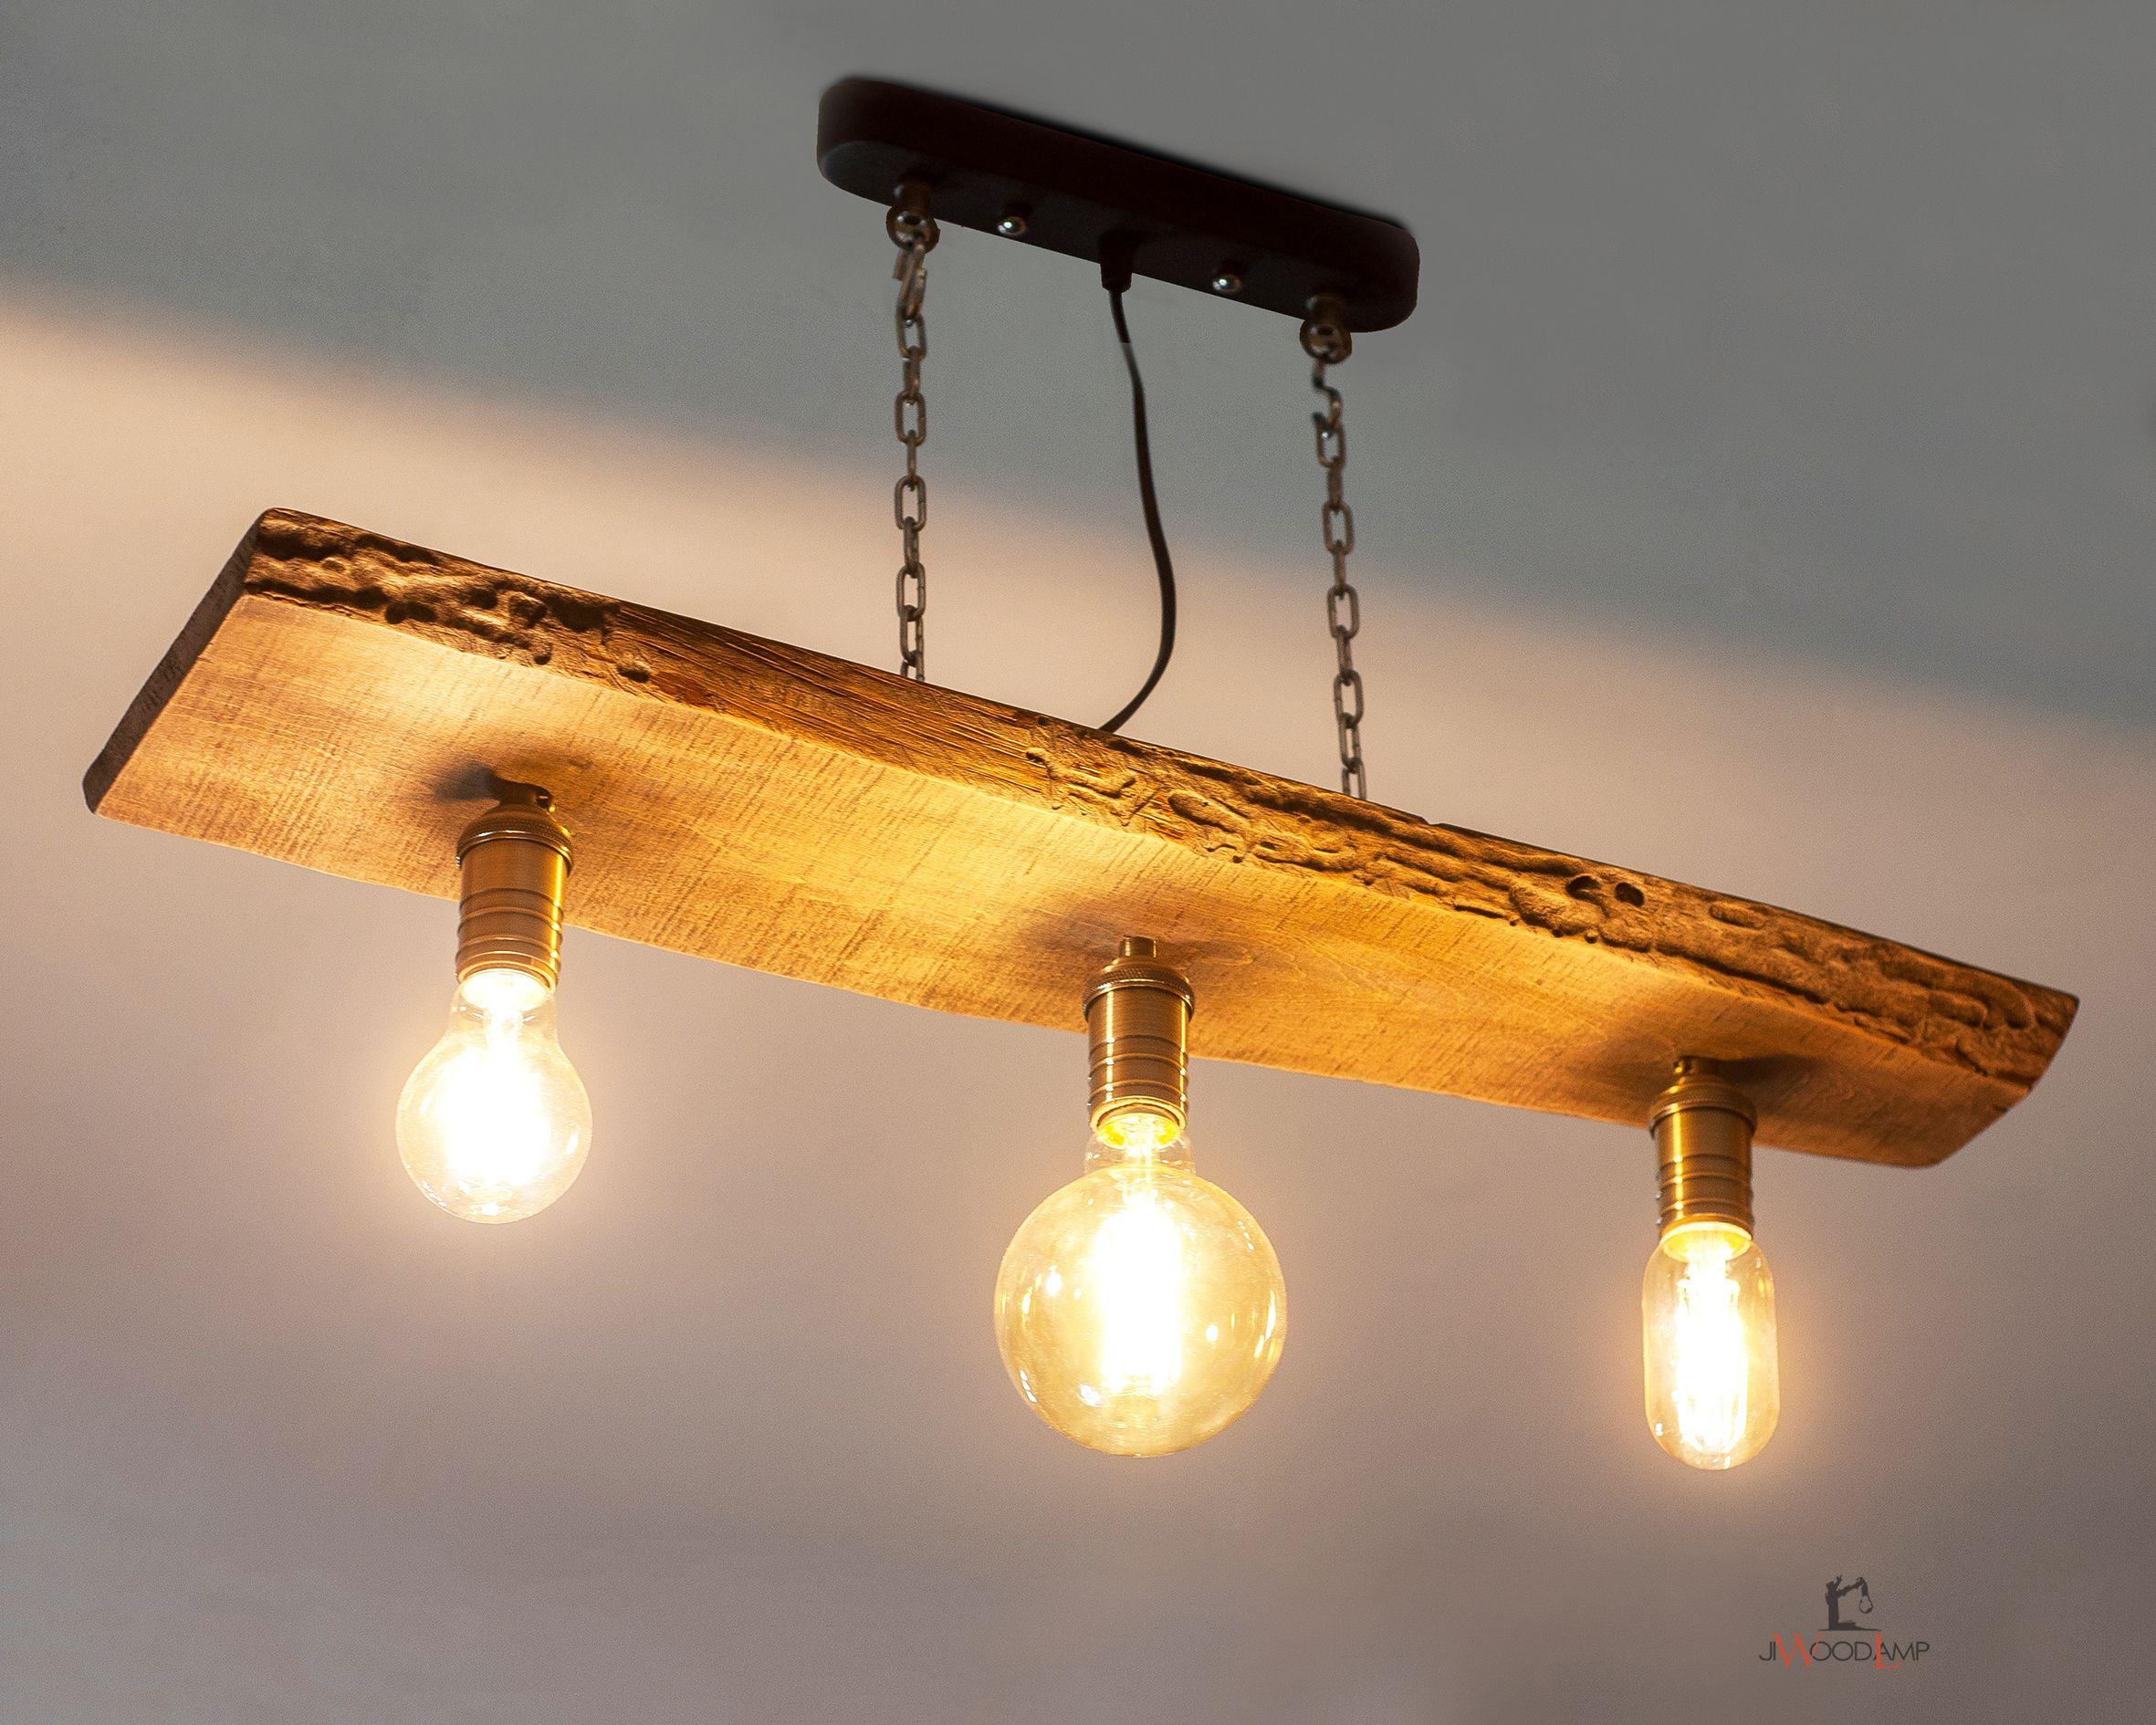 Hanging Lamp Ideas For Your Bedroom